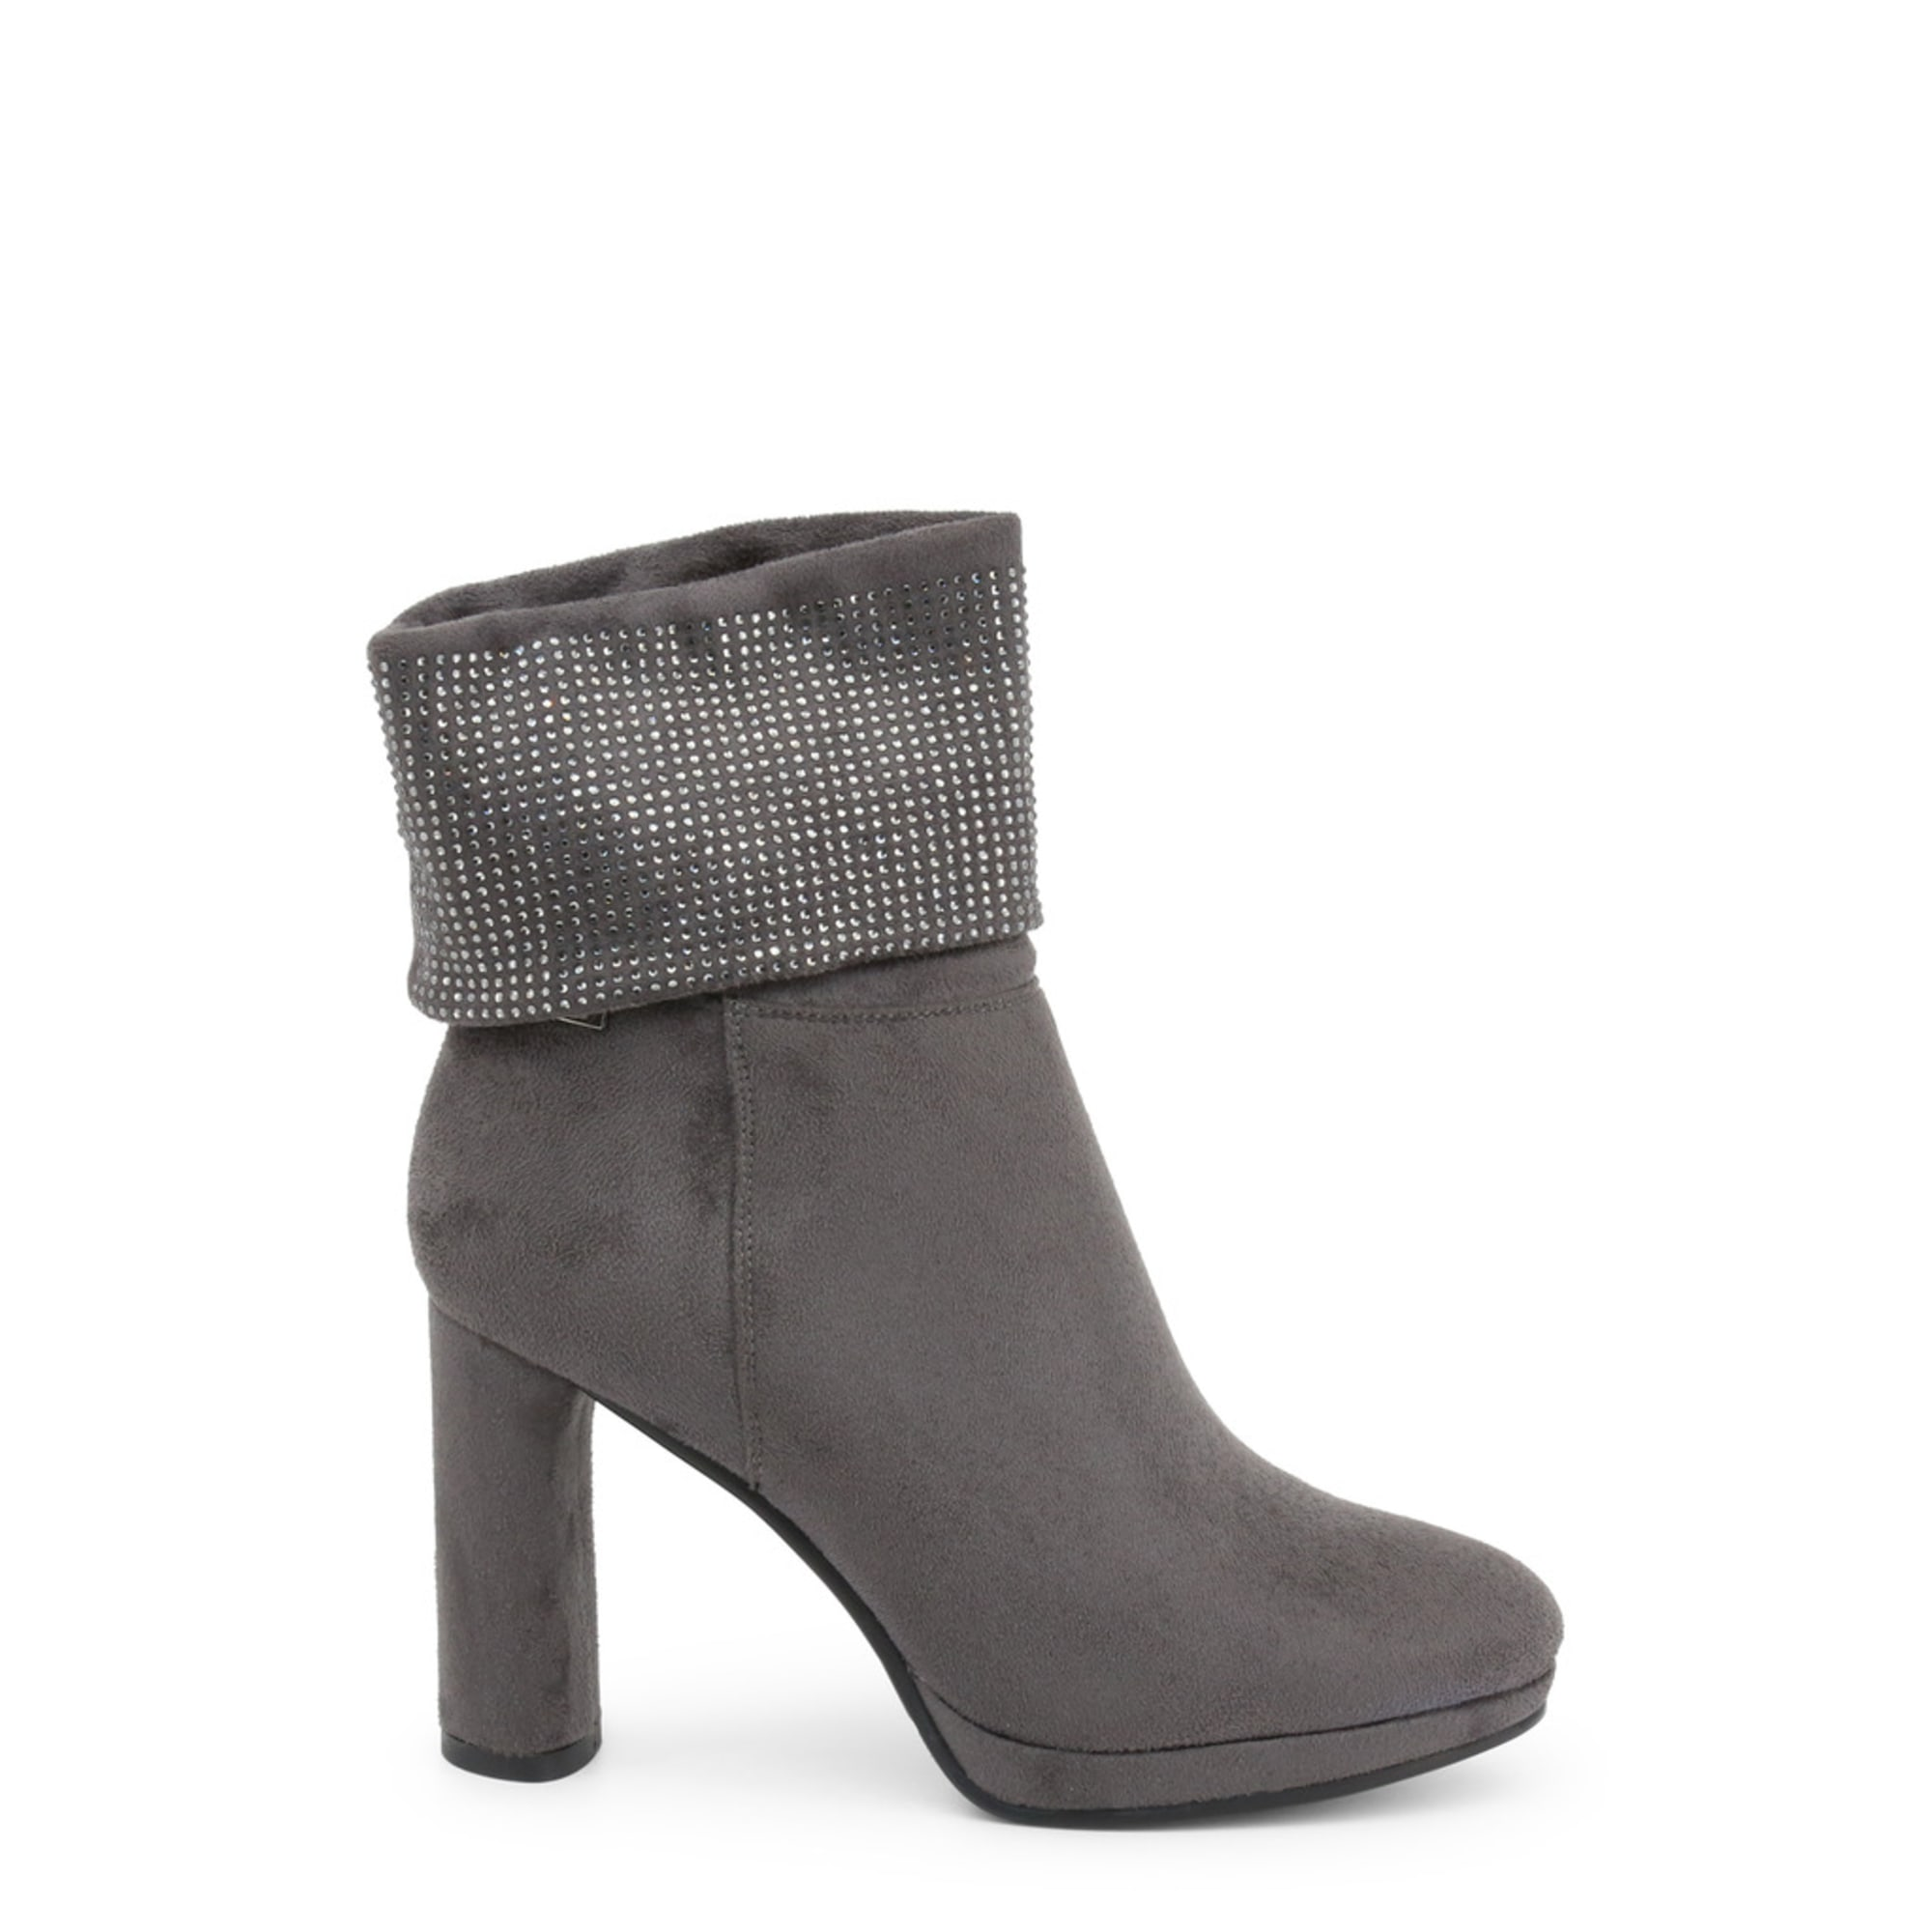 Bottines & low boots à talons LAURA BIAGIOTTI Gris, anthracite